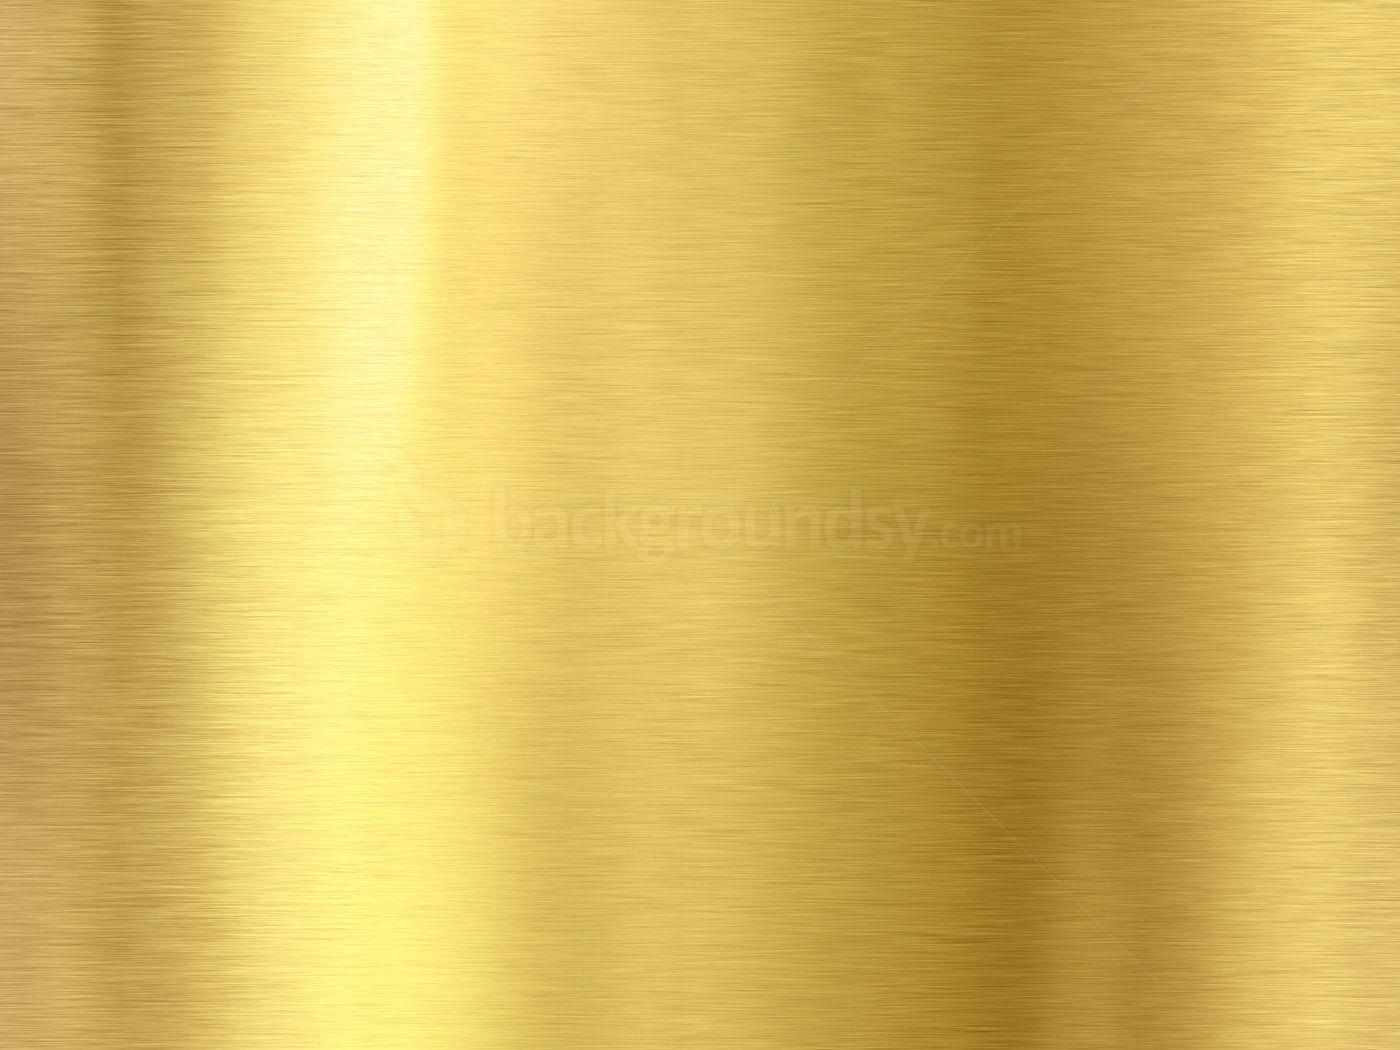 Gold color wallpapers wallpaper cave for Metallic wallpaper